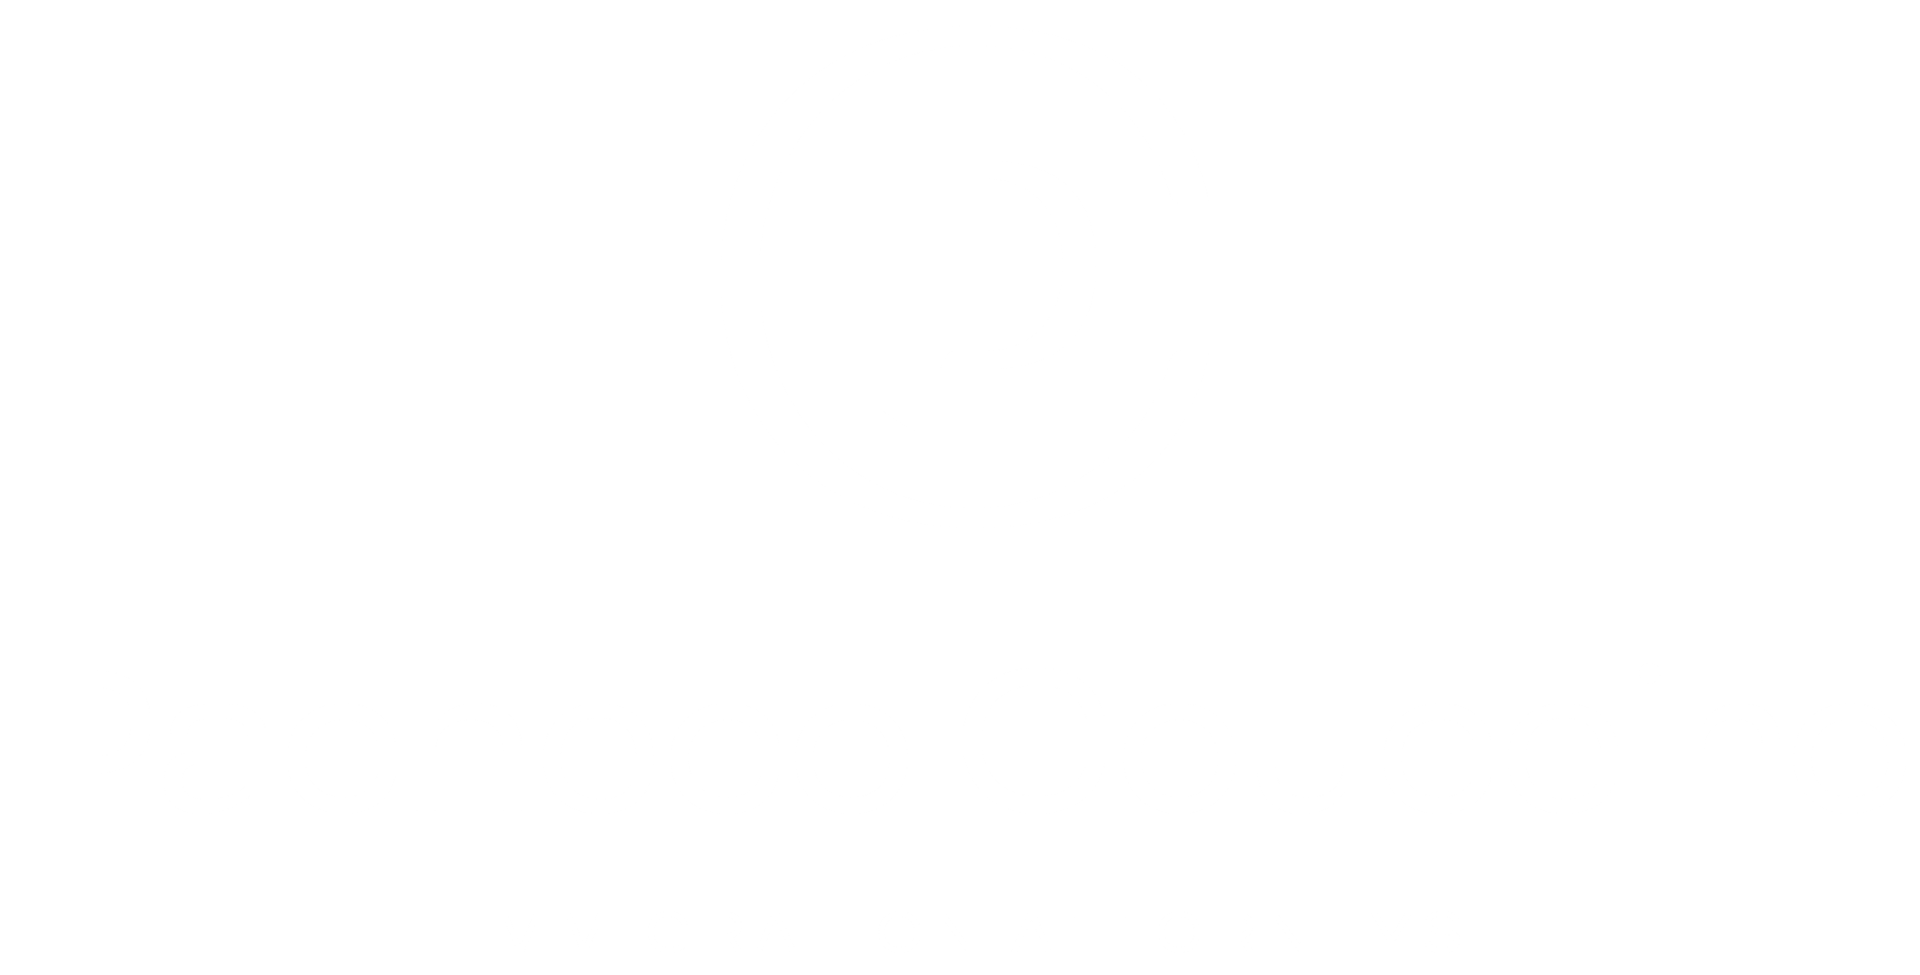 Law Office of Marco Pacheco: Immigration Attorney in Brownsville, TX